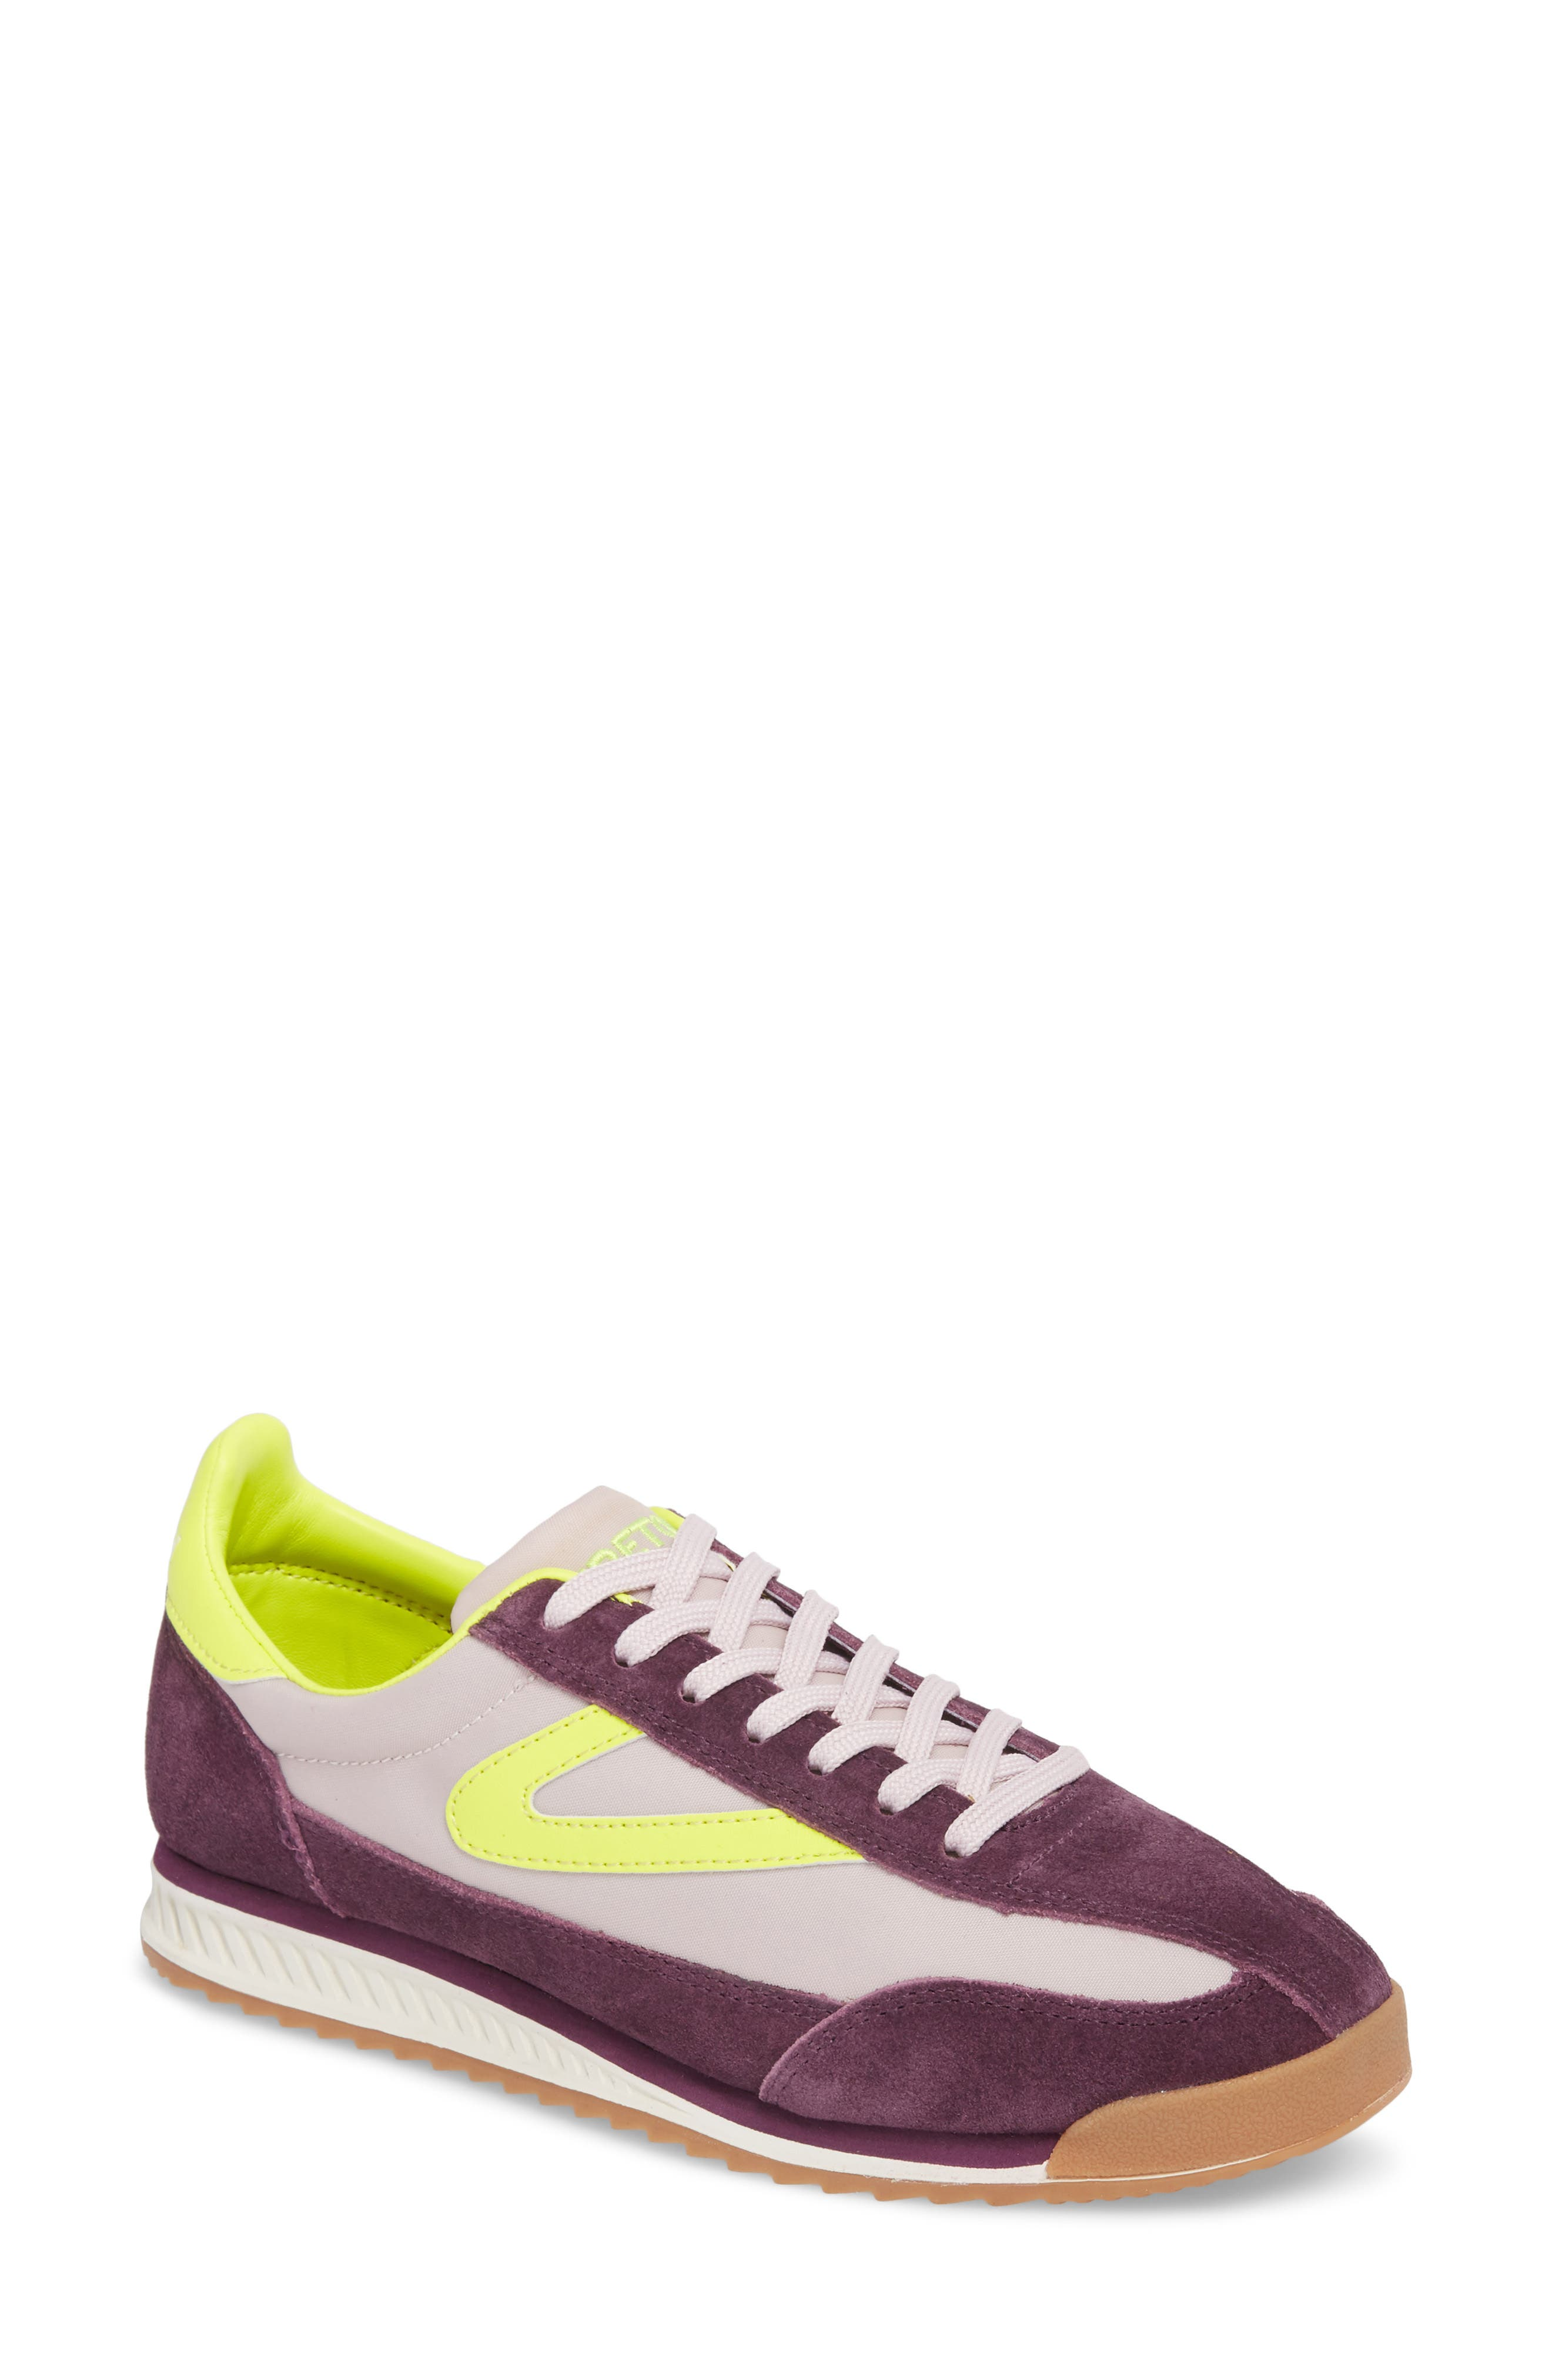 Rawlins 2 Sneaker,                         Main,                         color, EGGPLANT/ SUMMER LILAC/ YELLOW